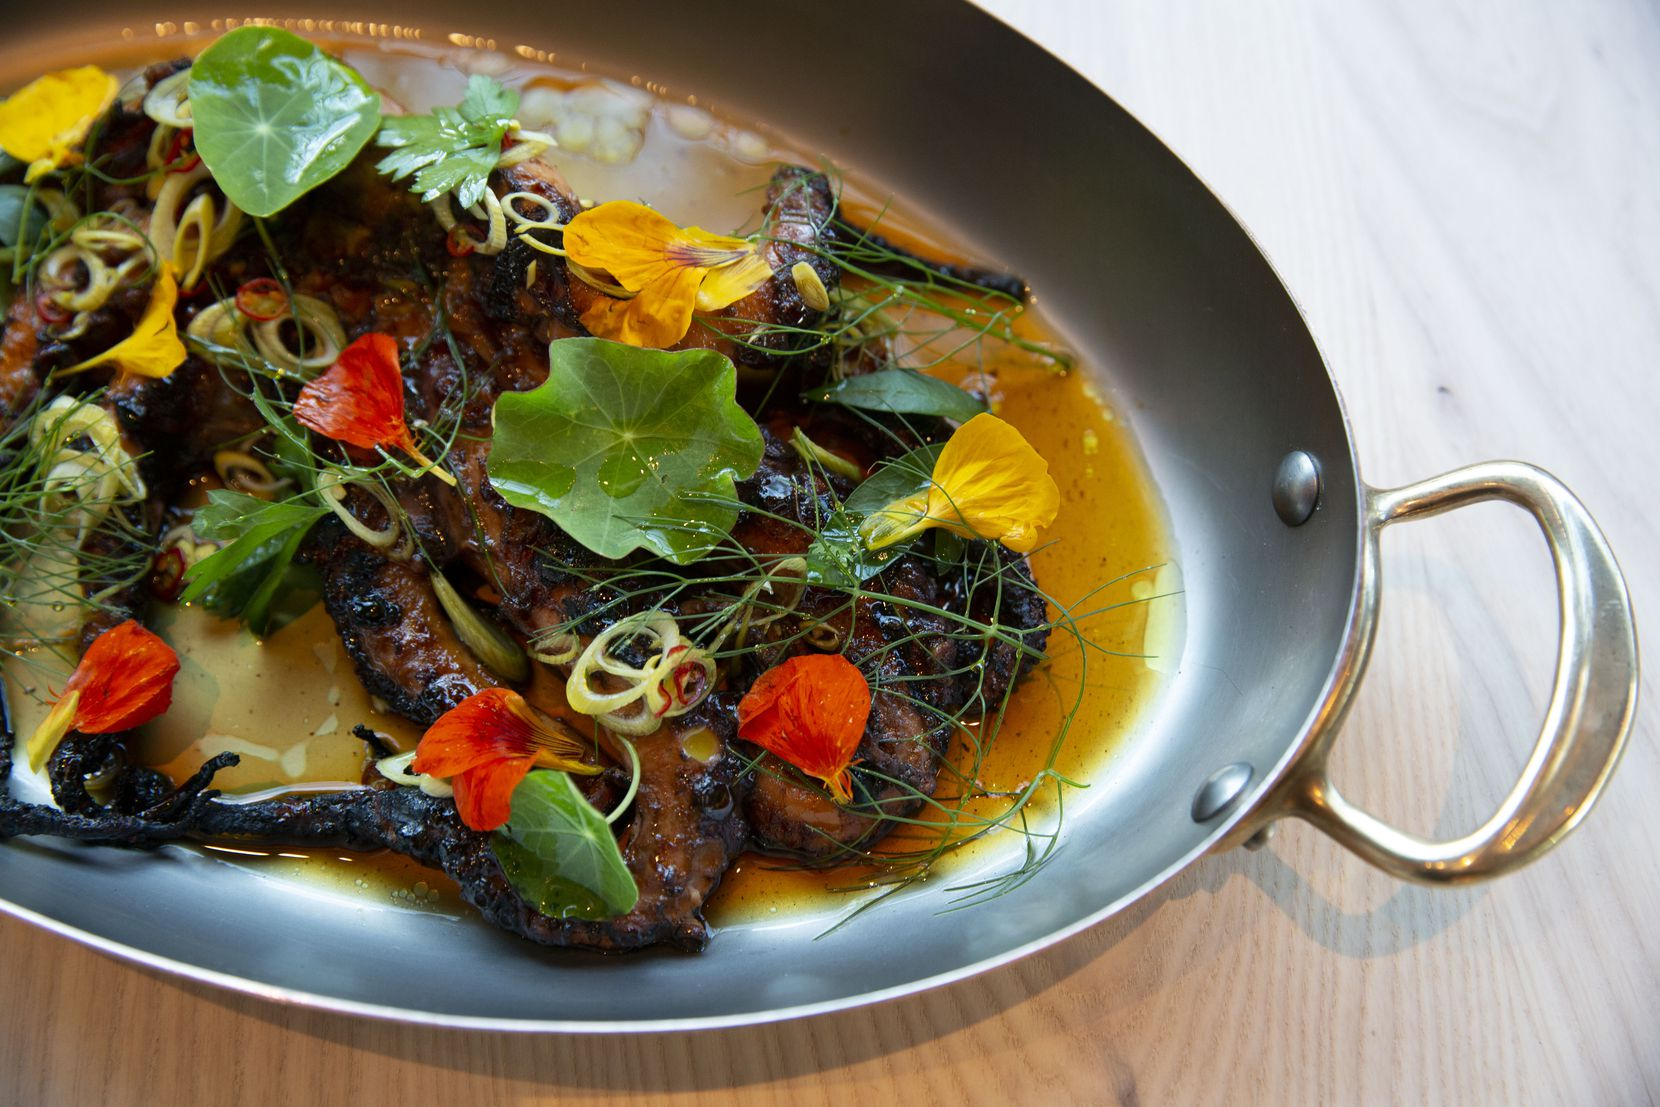 The grilled octopus is shown at the new restaurant, Meridian, in The Village area of Dallas